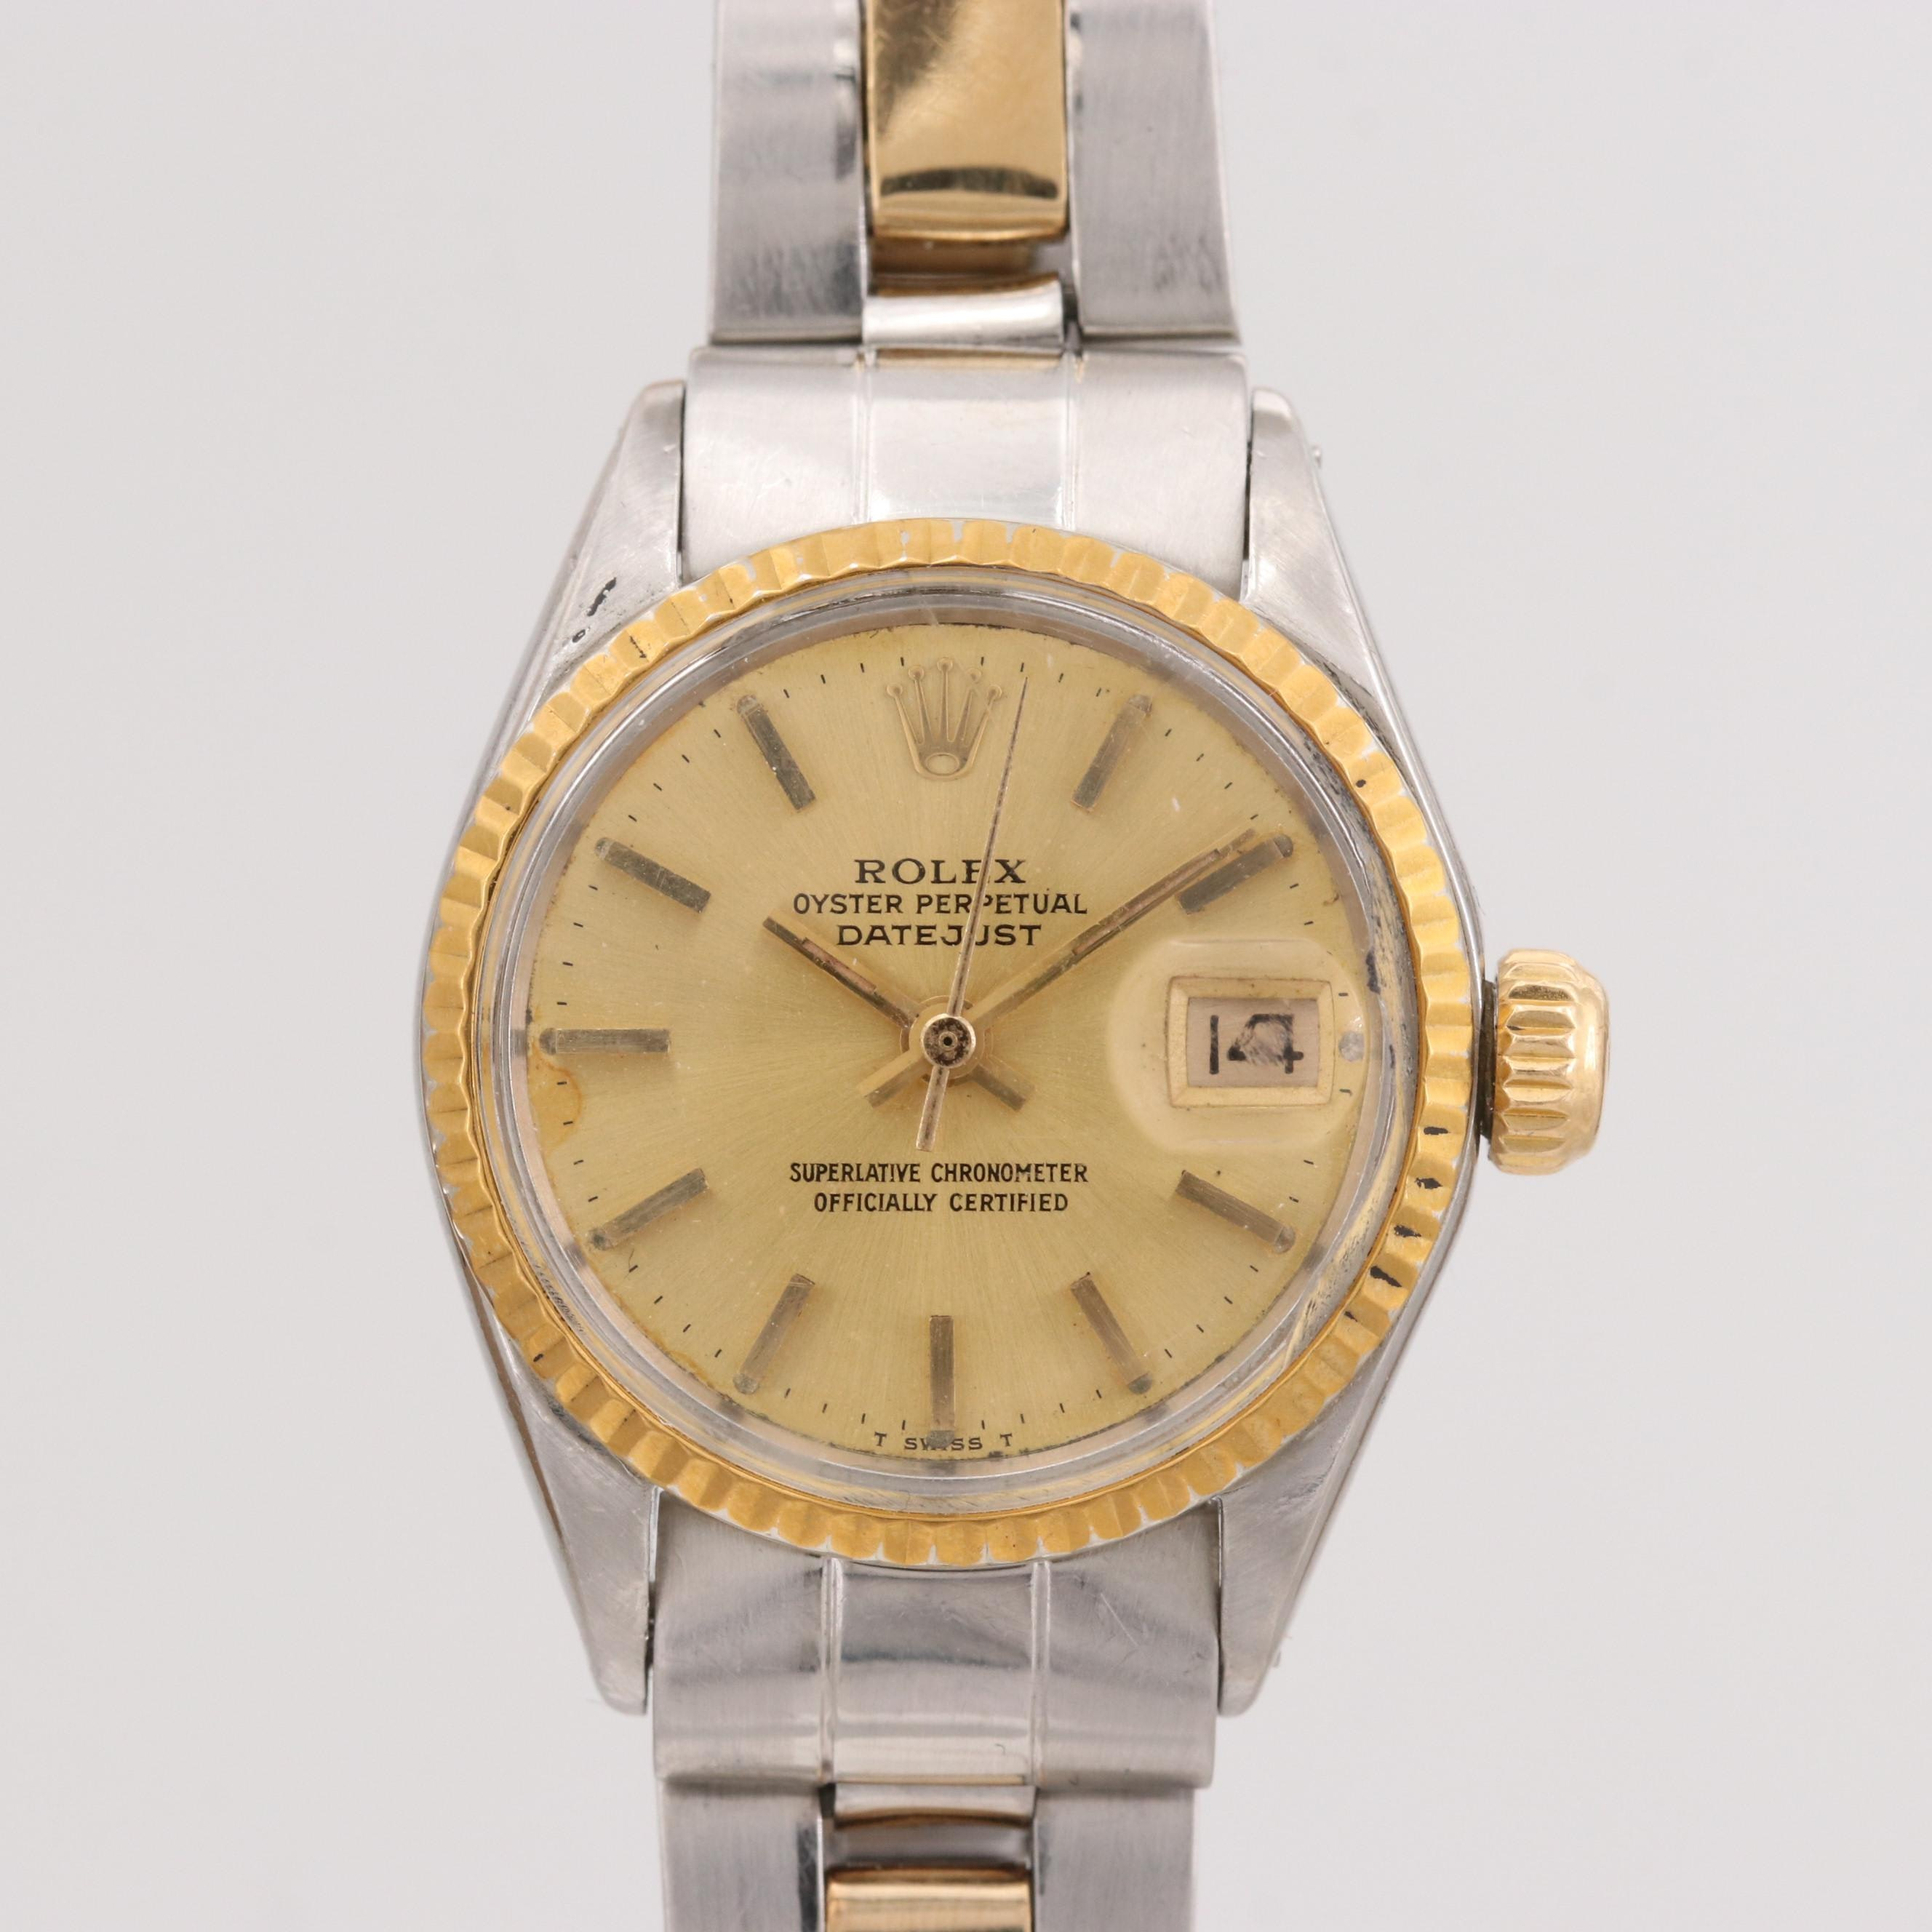 Vintage Rolex Datejust Stainless Steel and 18K Yellow Gold Wristwatch, 1970